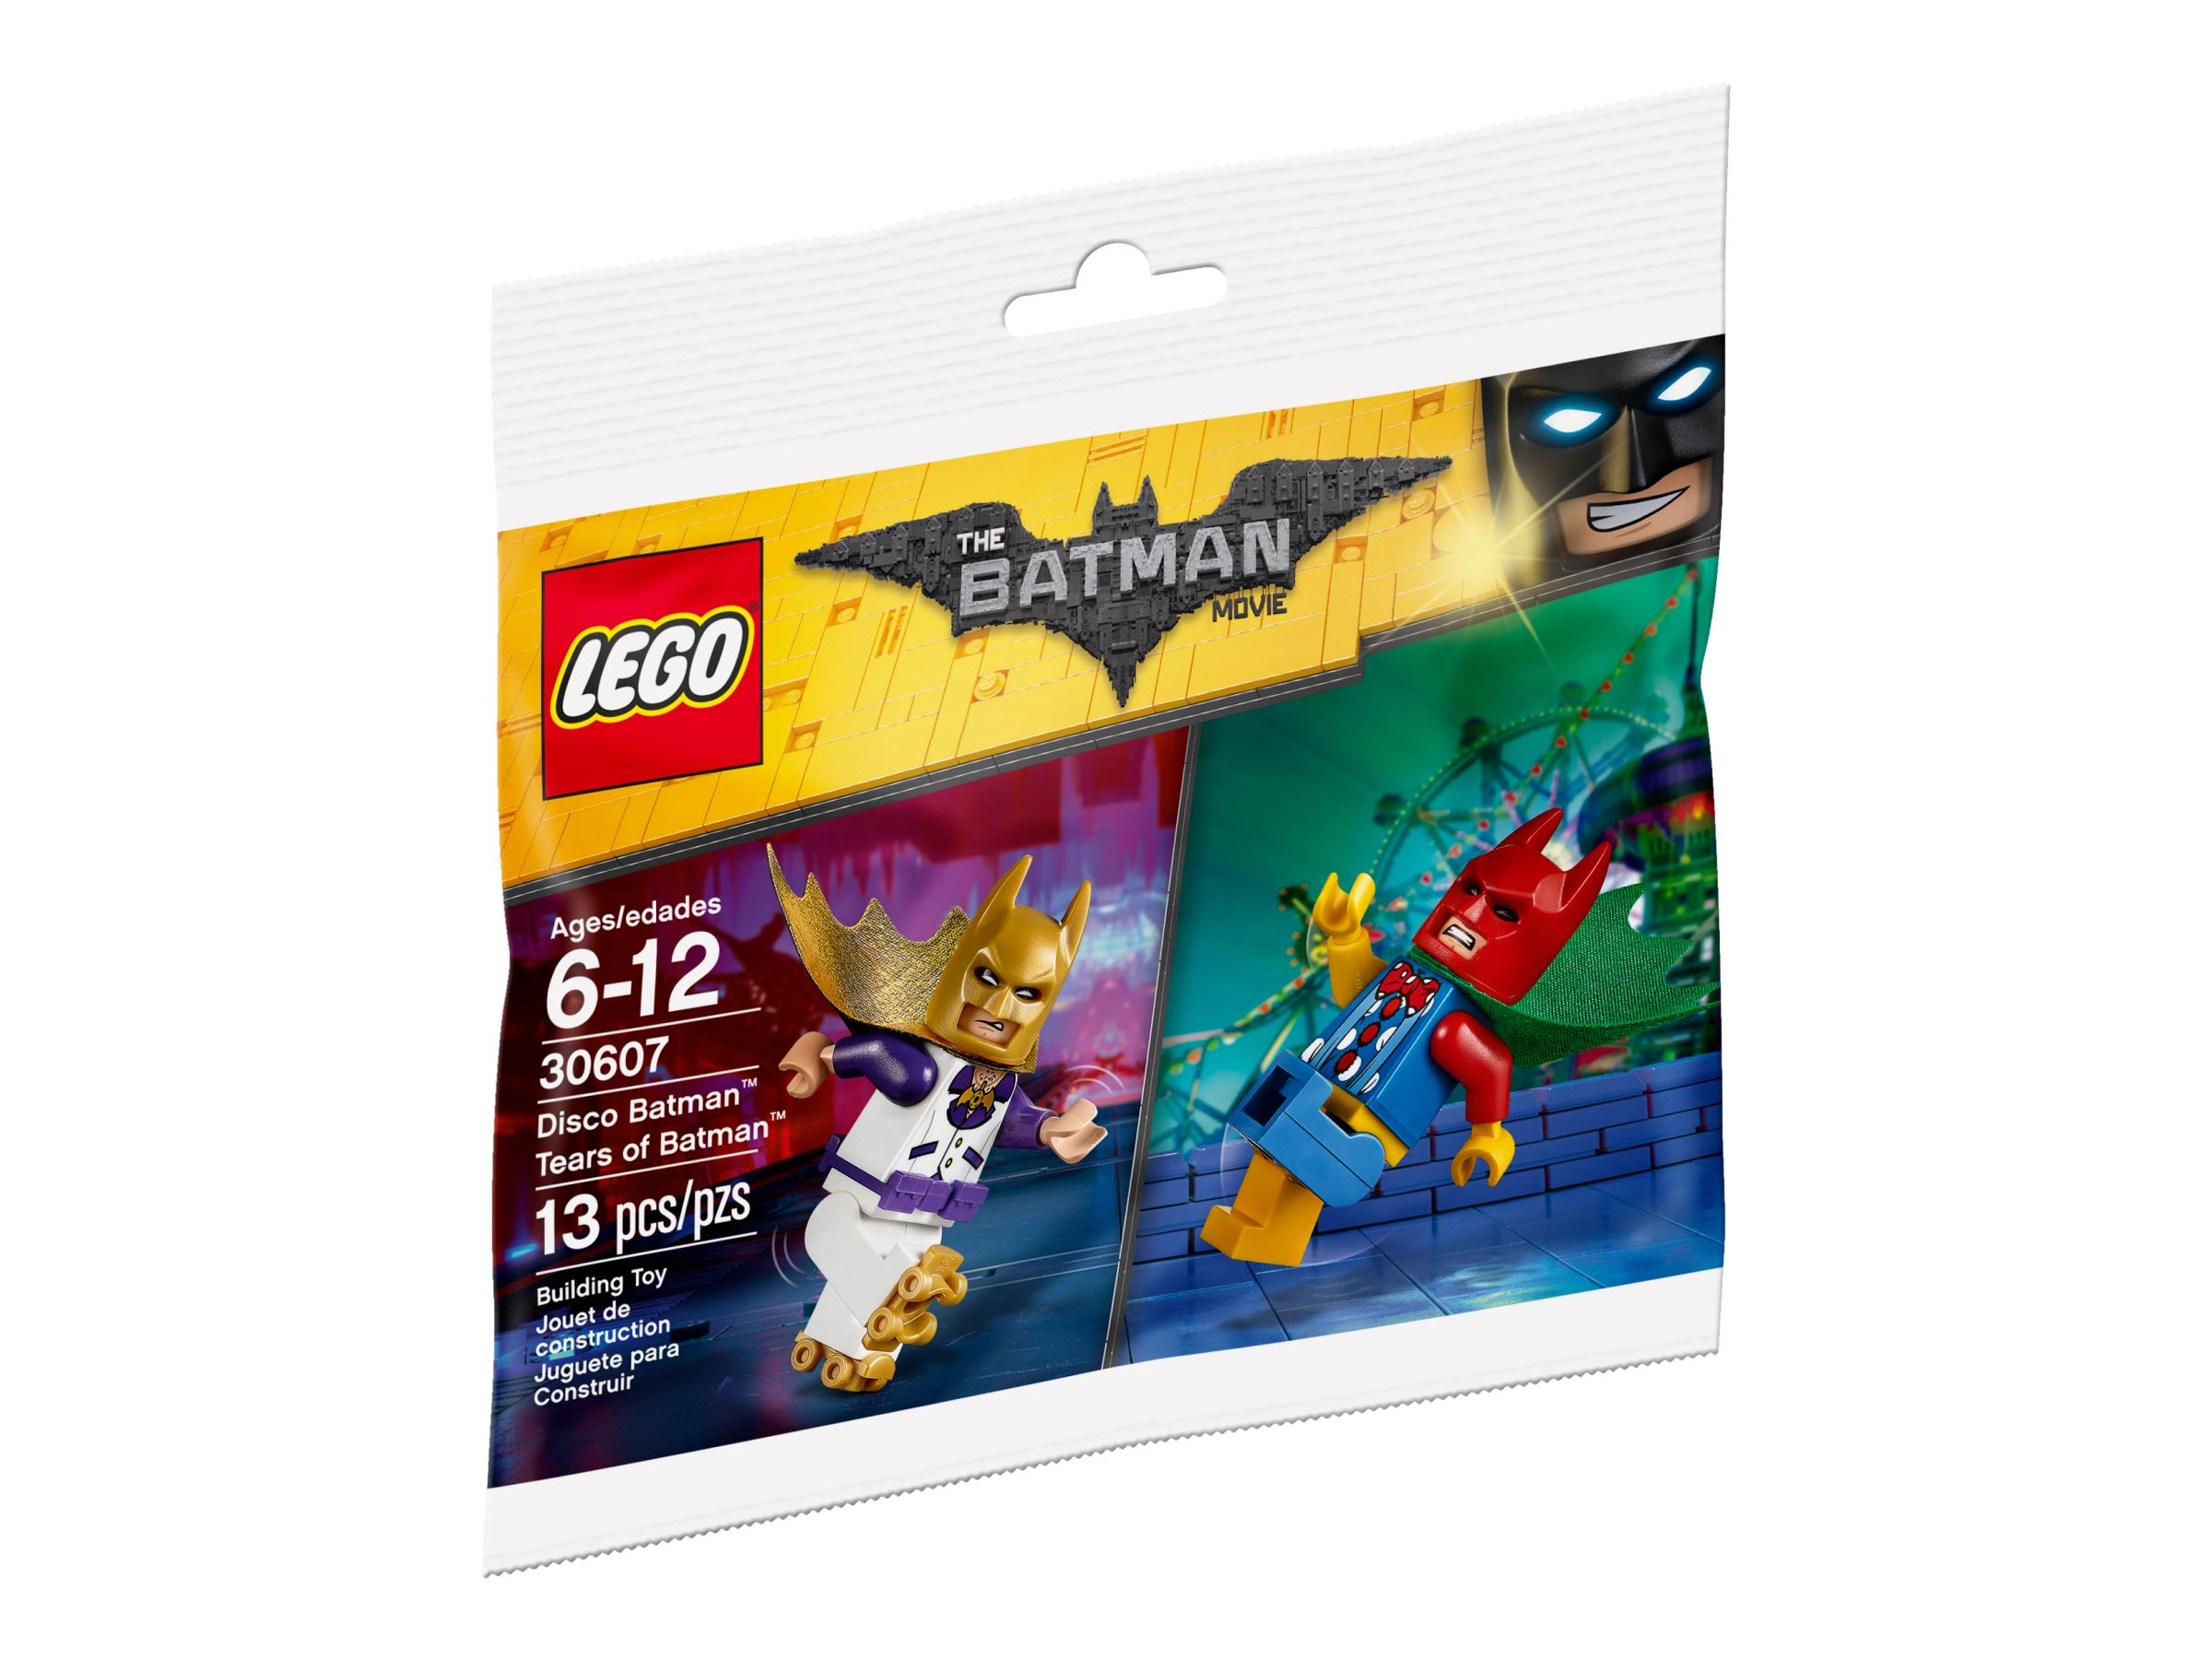 LEGO The LEGO Batman Movie 30607 Batman™ im Disco-Outfit LEGO_30607_alt2.jpg